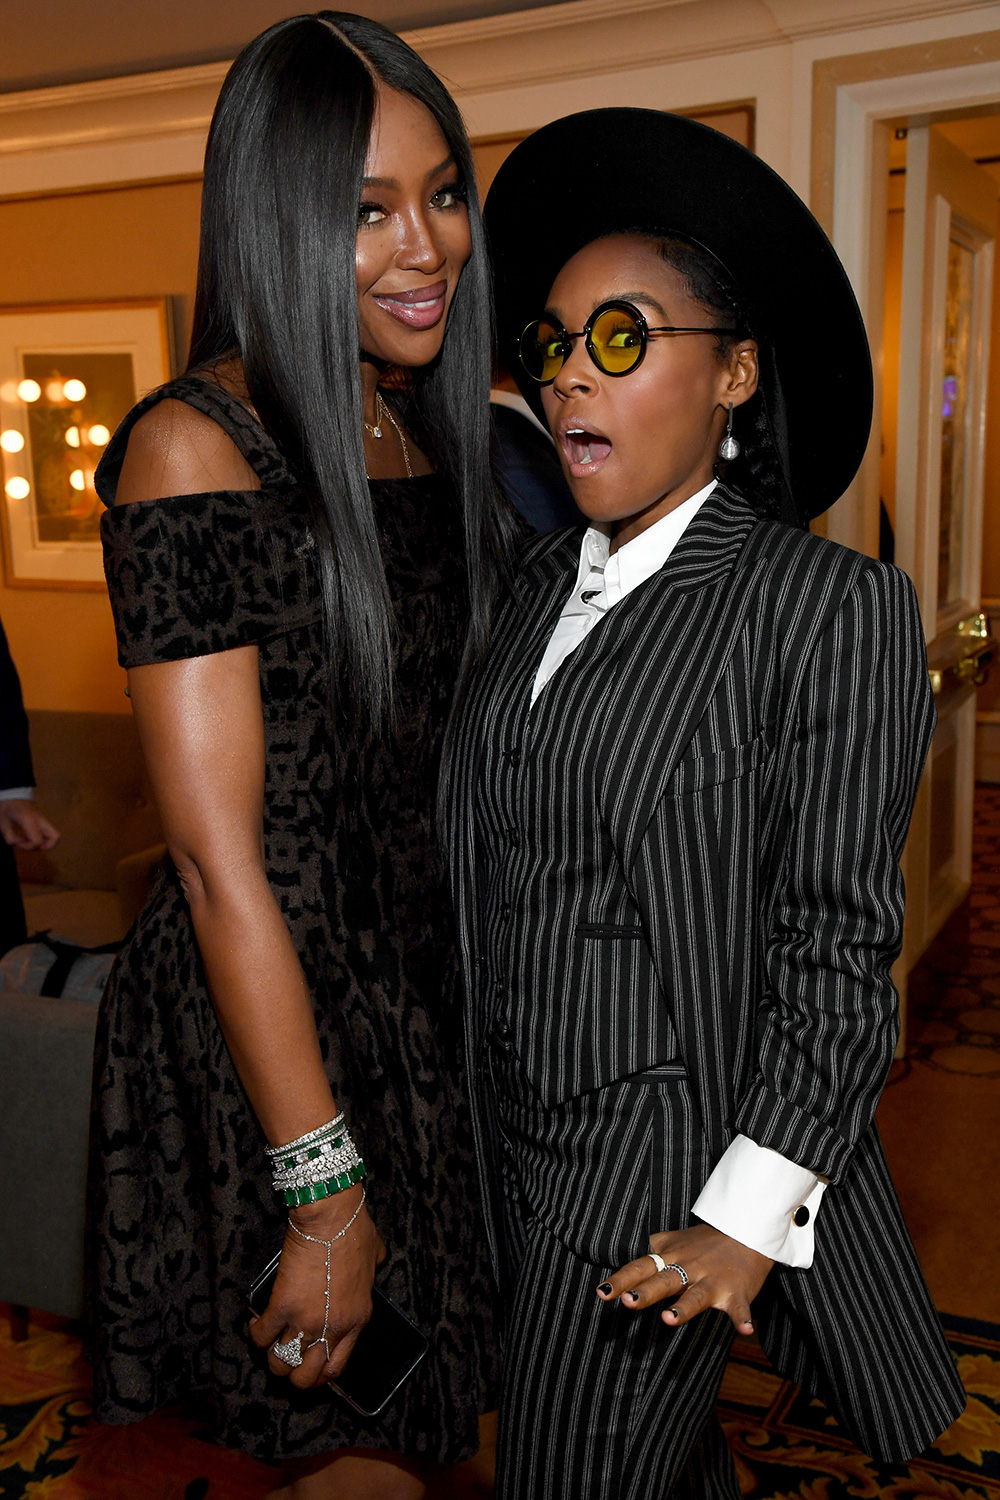 Naomi Campbell and Janelle Monáe attend the Amazon Studios 2020 Winter TCA Press Tour at Langham Hotel on January 14, 2020 in Pasadena, California